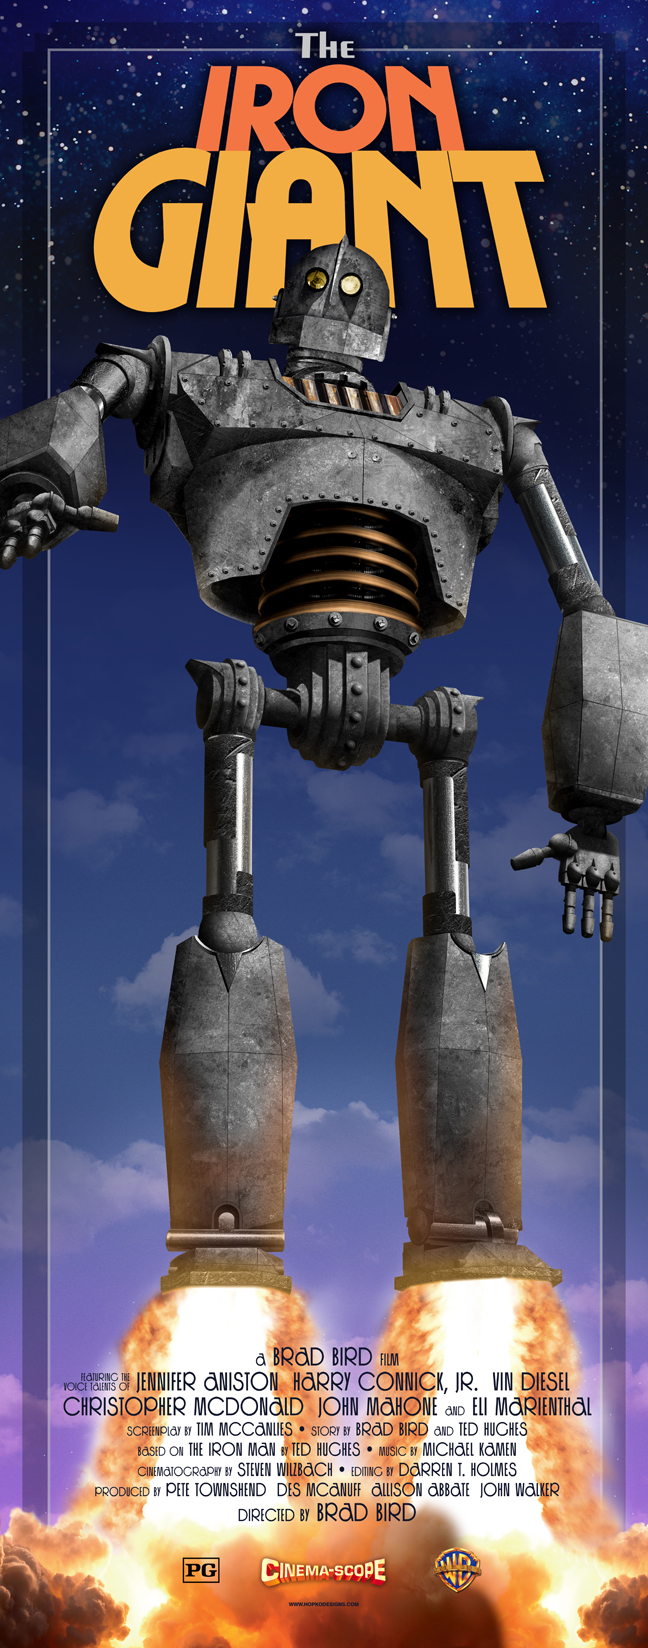 The Iron Giant poster - Hopko Designs